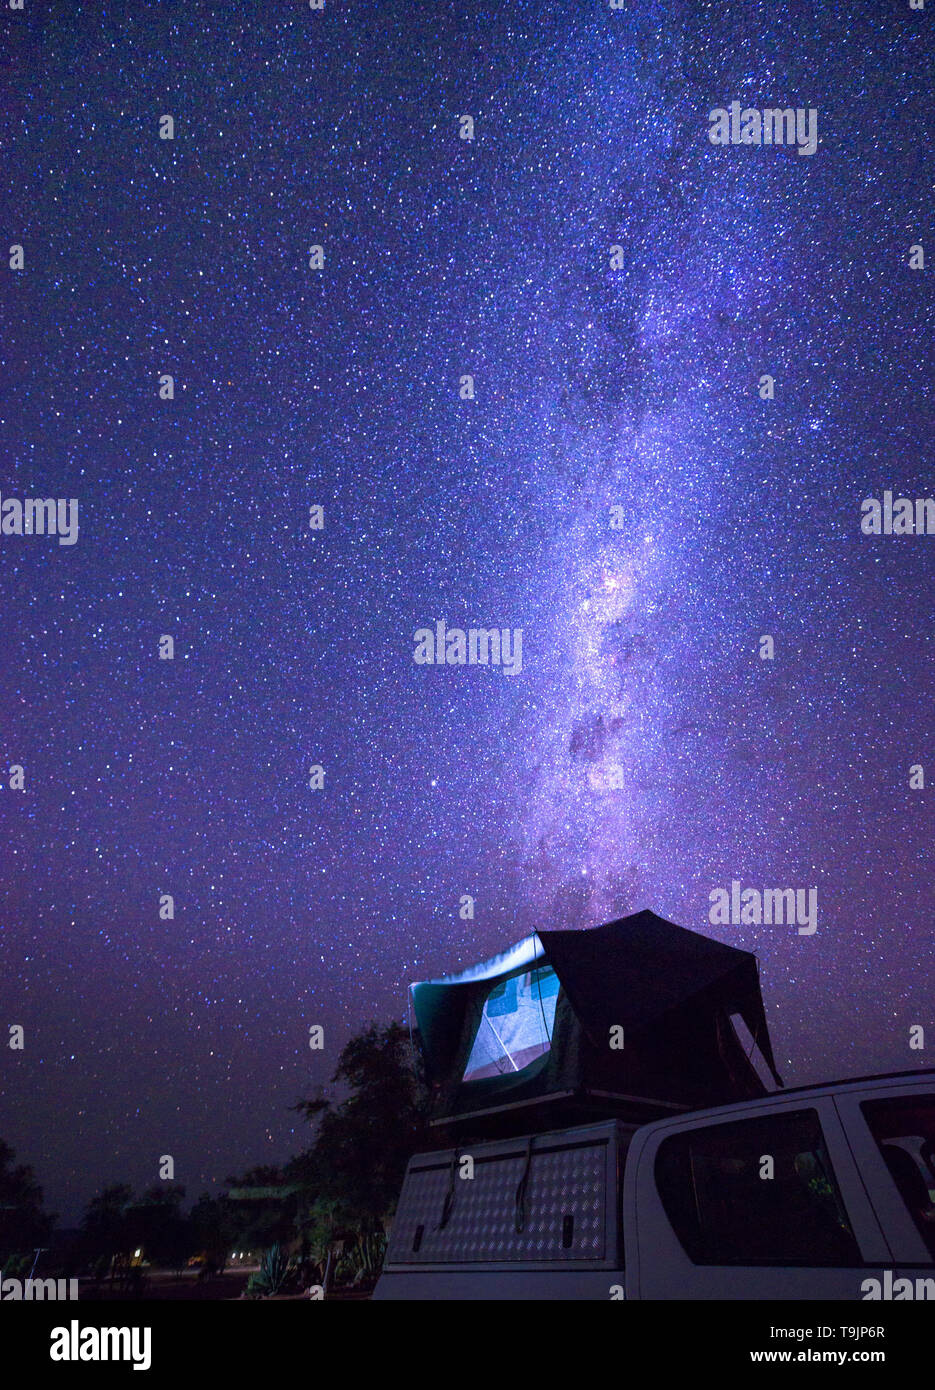 Milky way over a tent on the roof of a pickup car in the Namib desert of Namibia - Stock Image